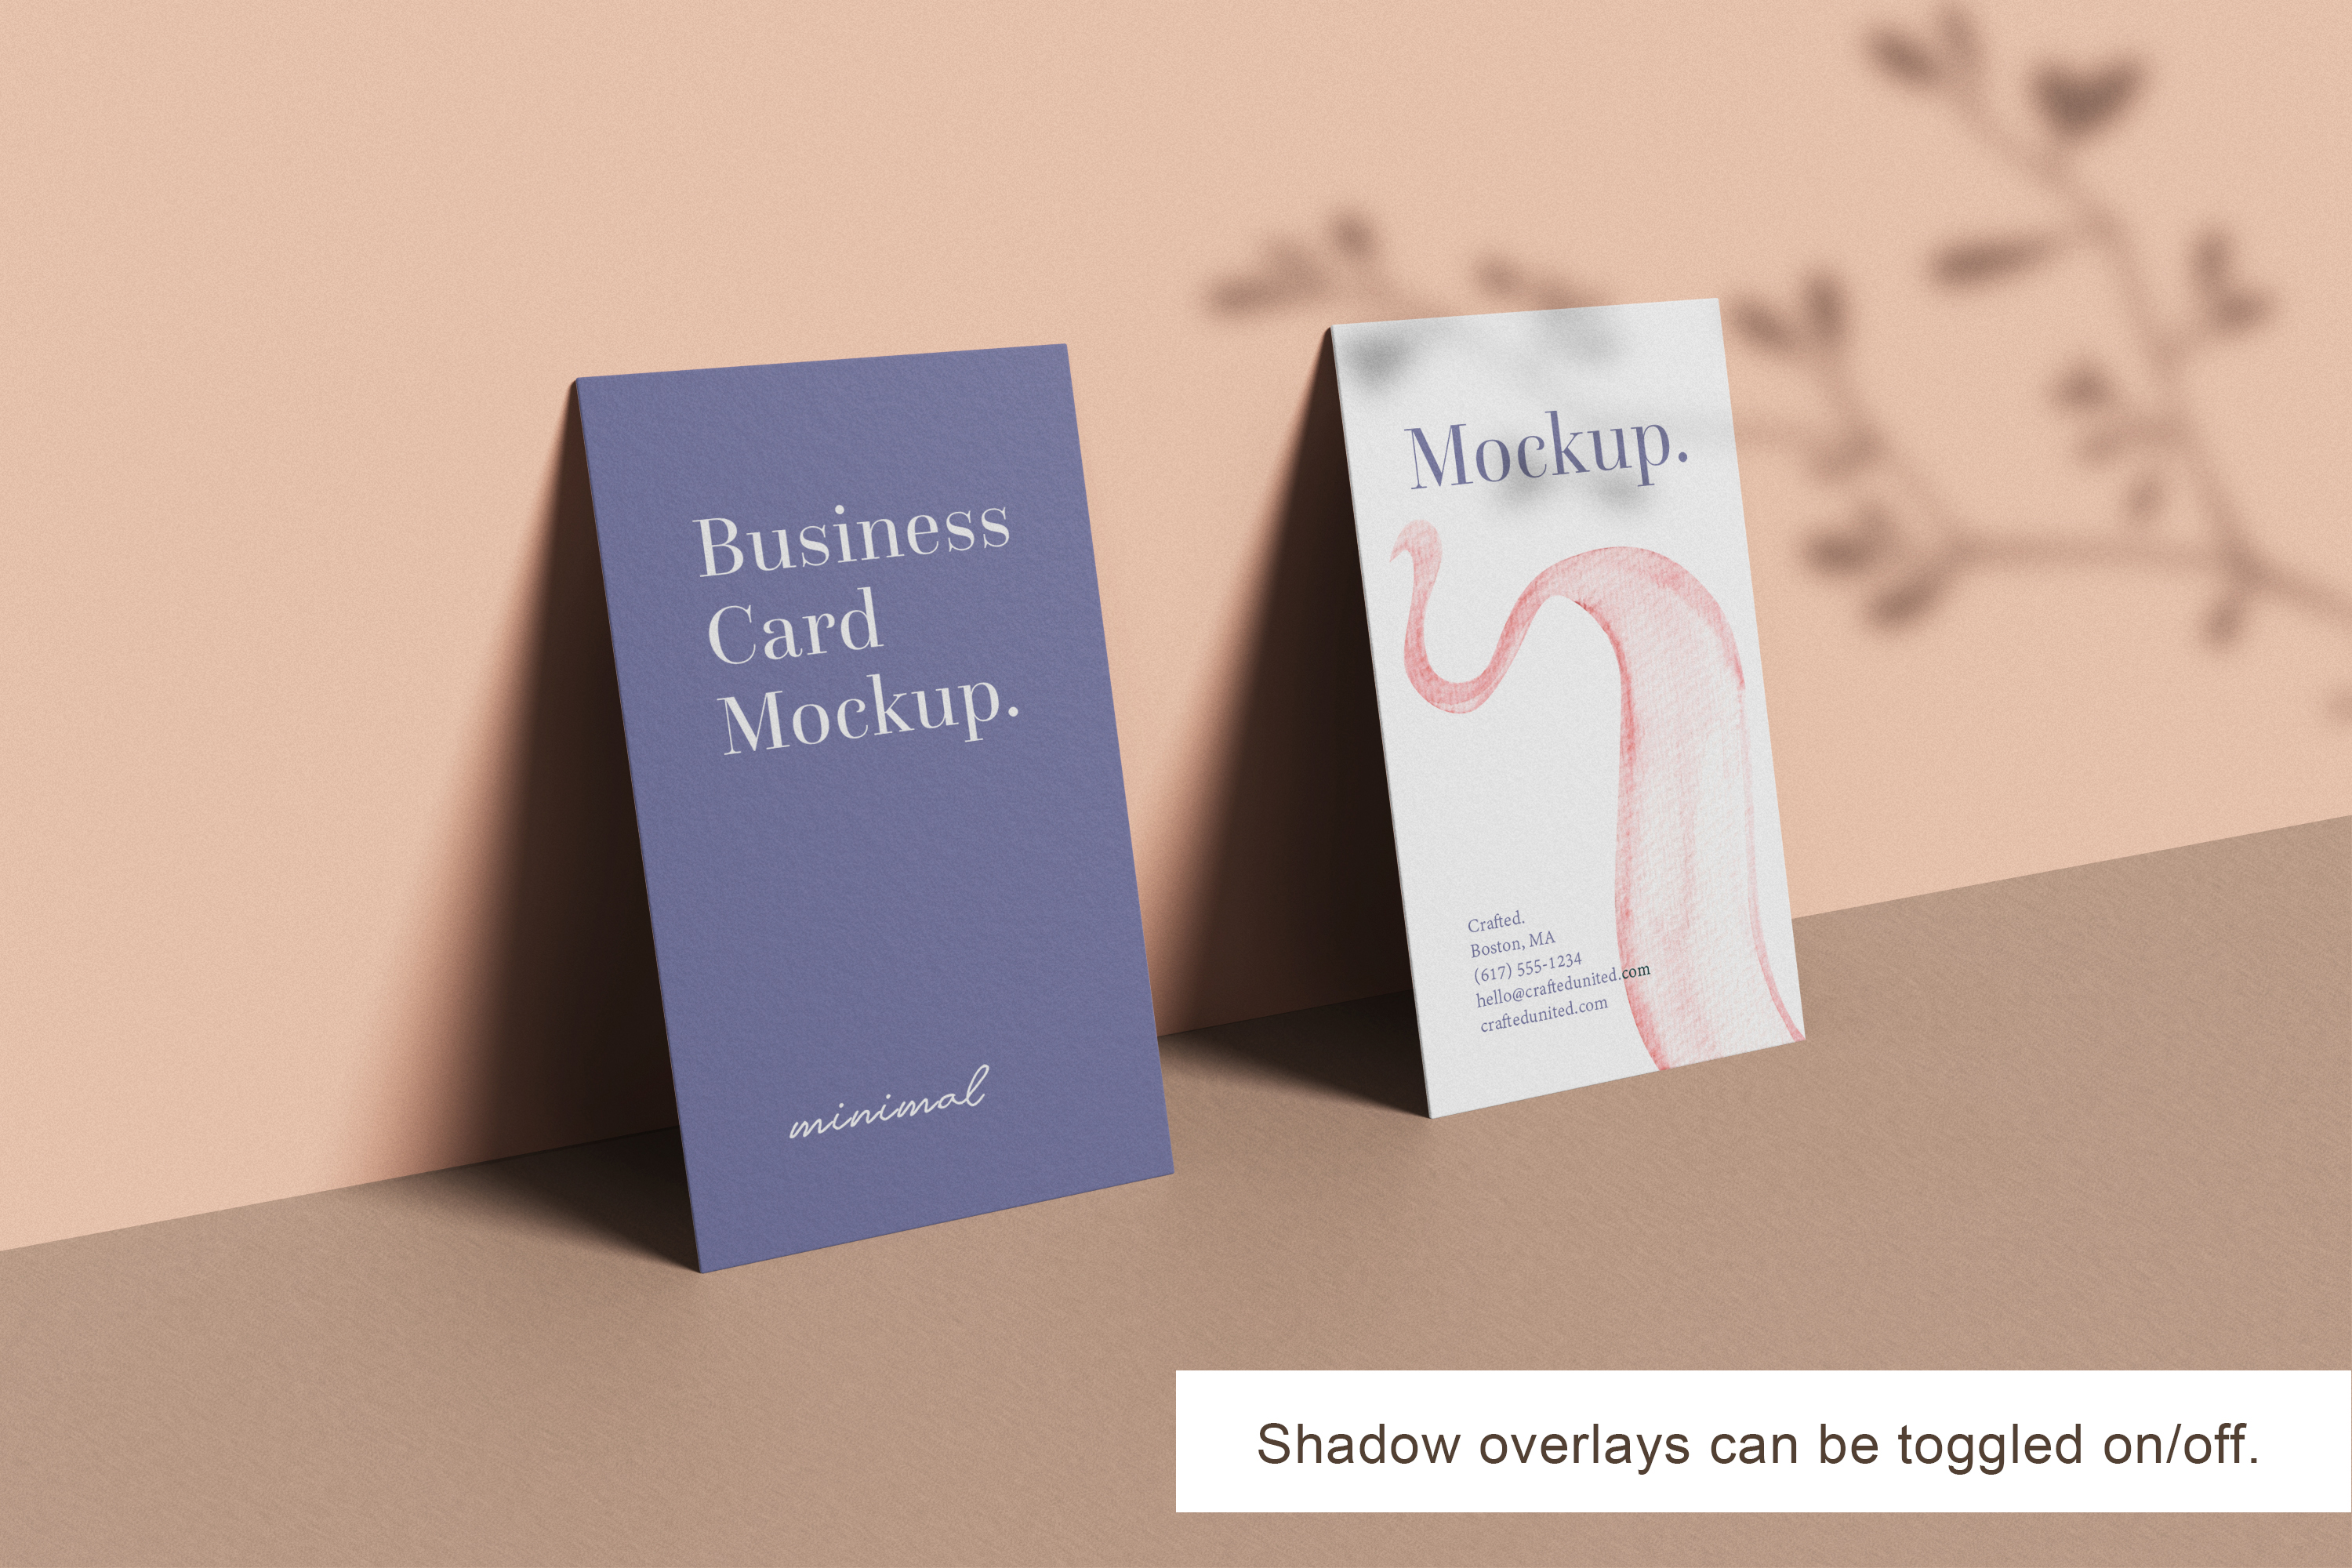 Modern Business Card Mockup example image 5